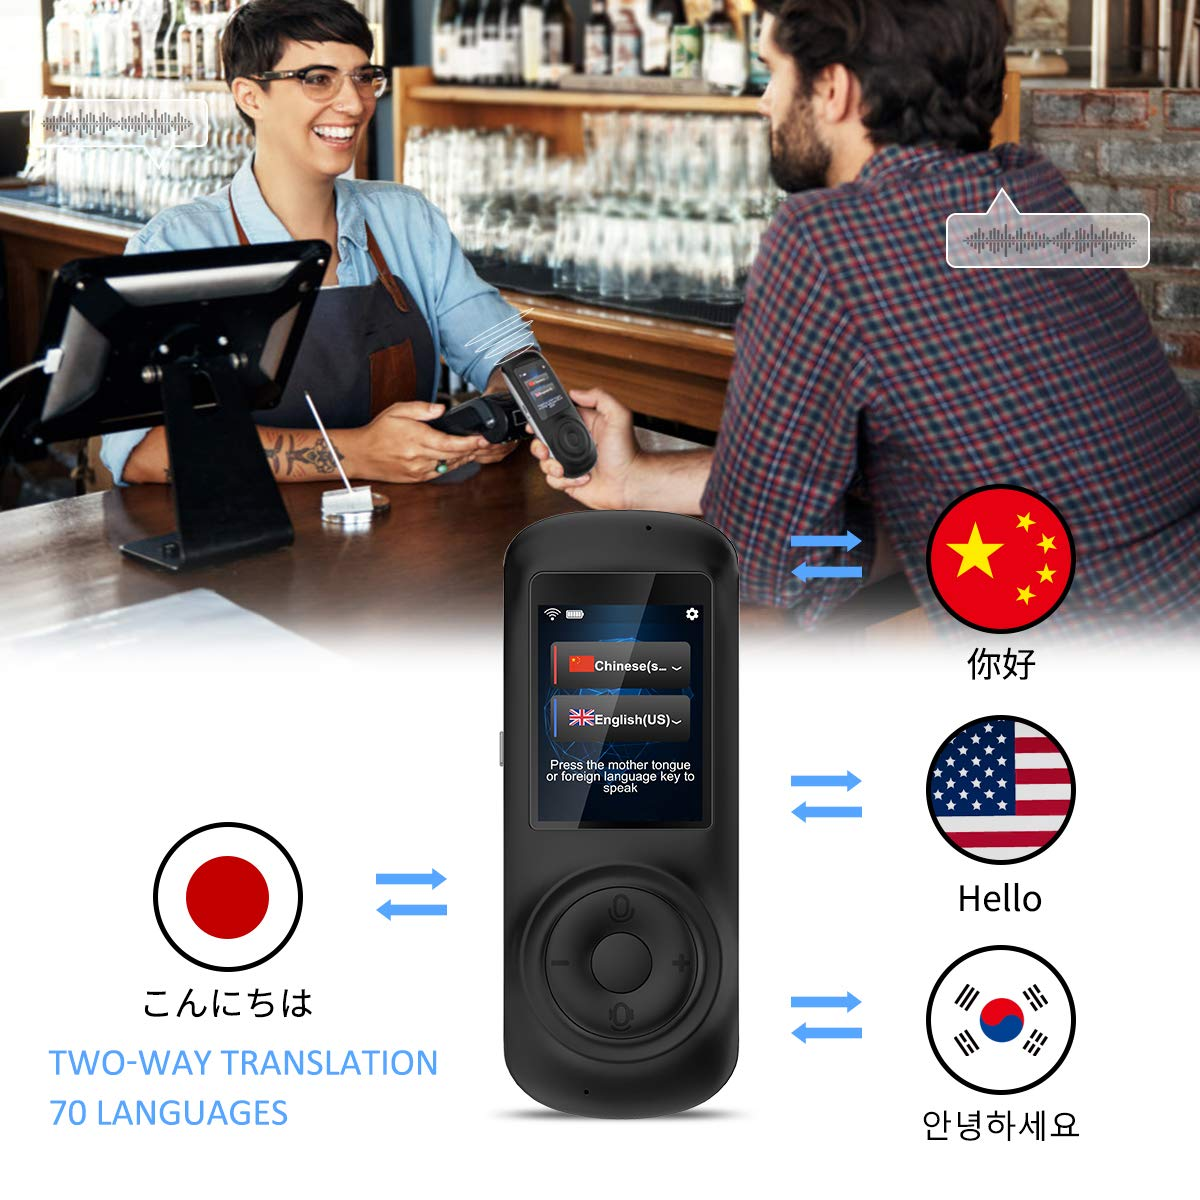 MORTENTR Translator Device Smart Voice Translator with 2.4inch HD Touch Screen Support 70 Languages for Learning Travel Business Shopping by MORTENTR (Image #3)